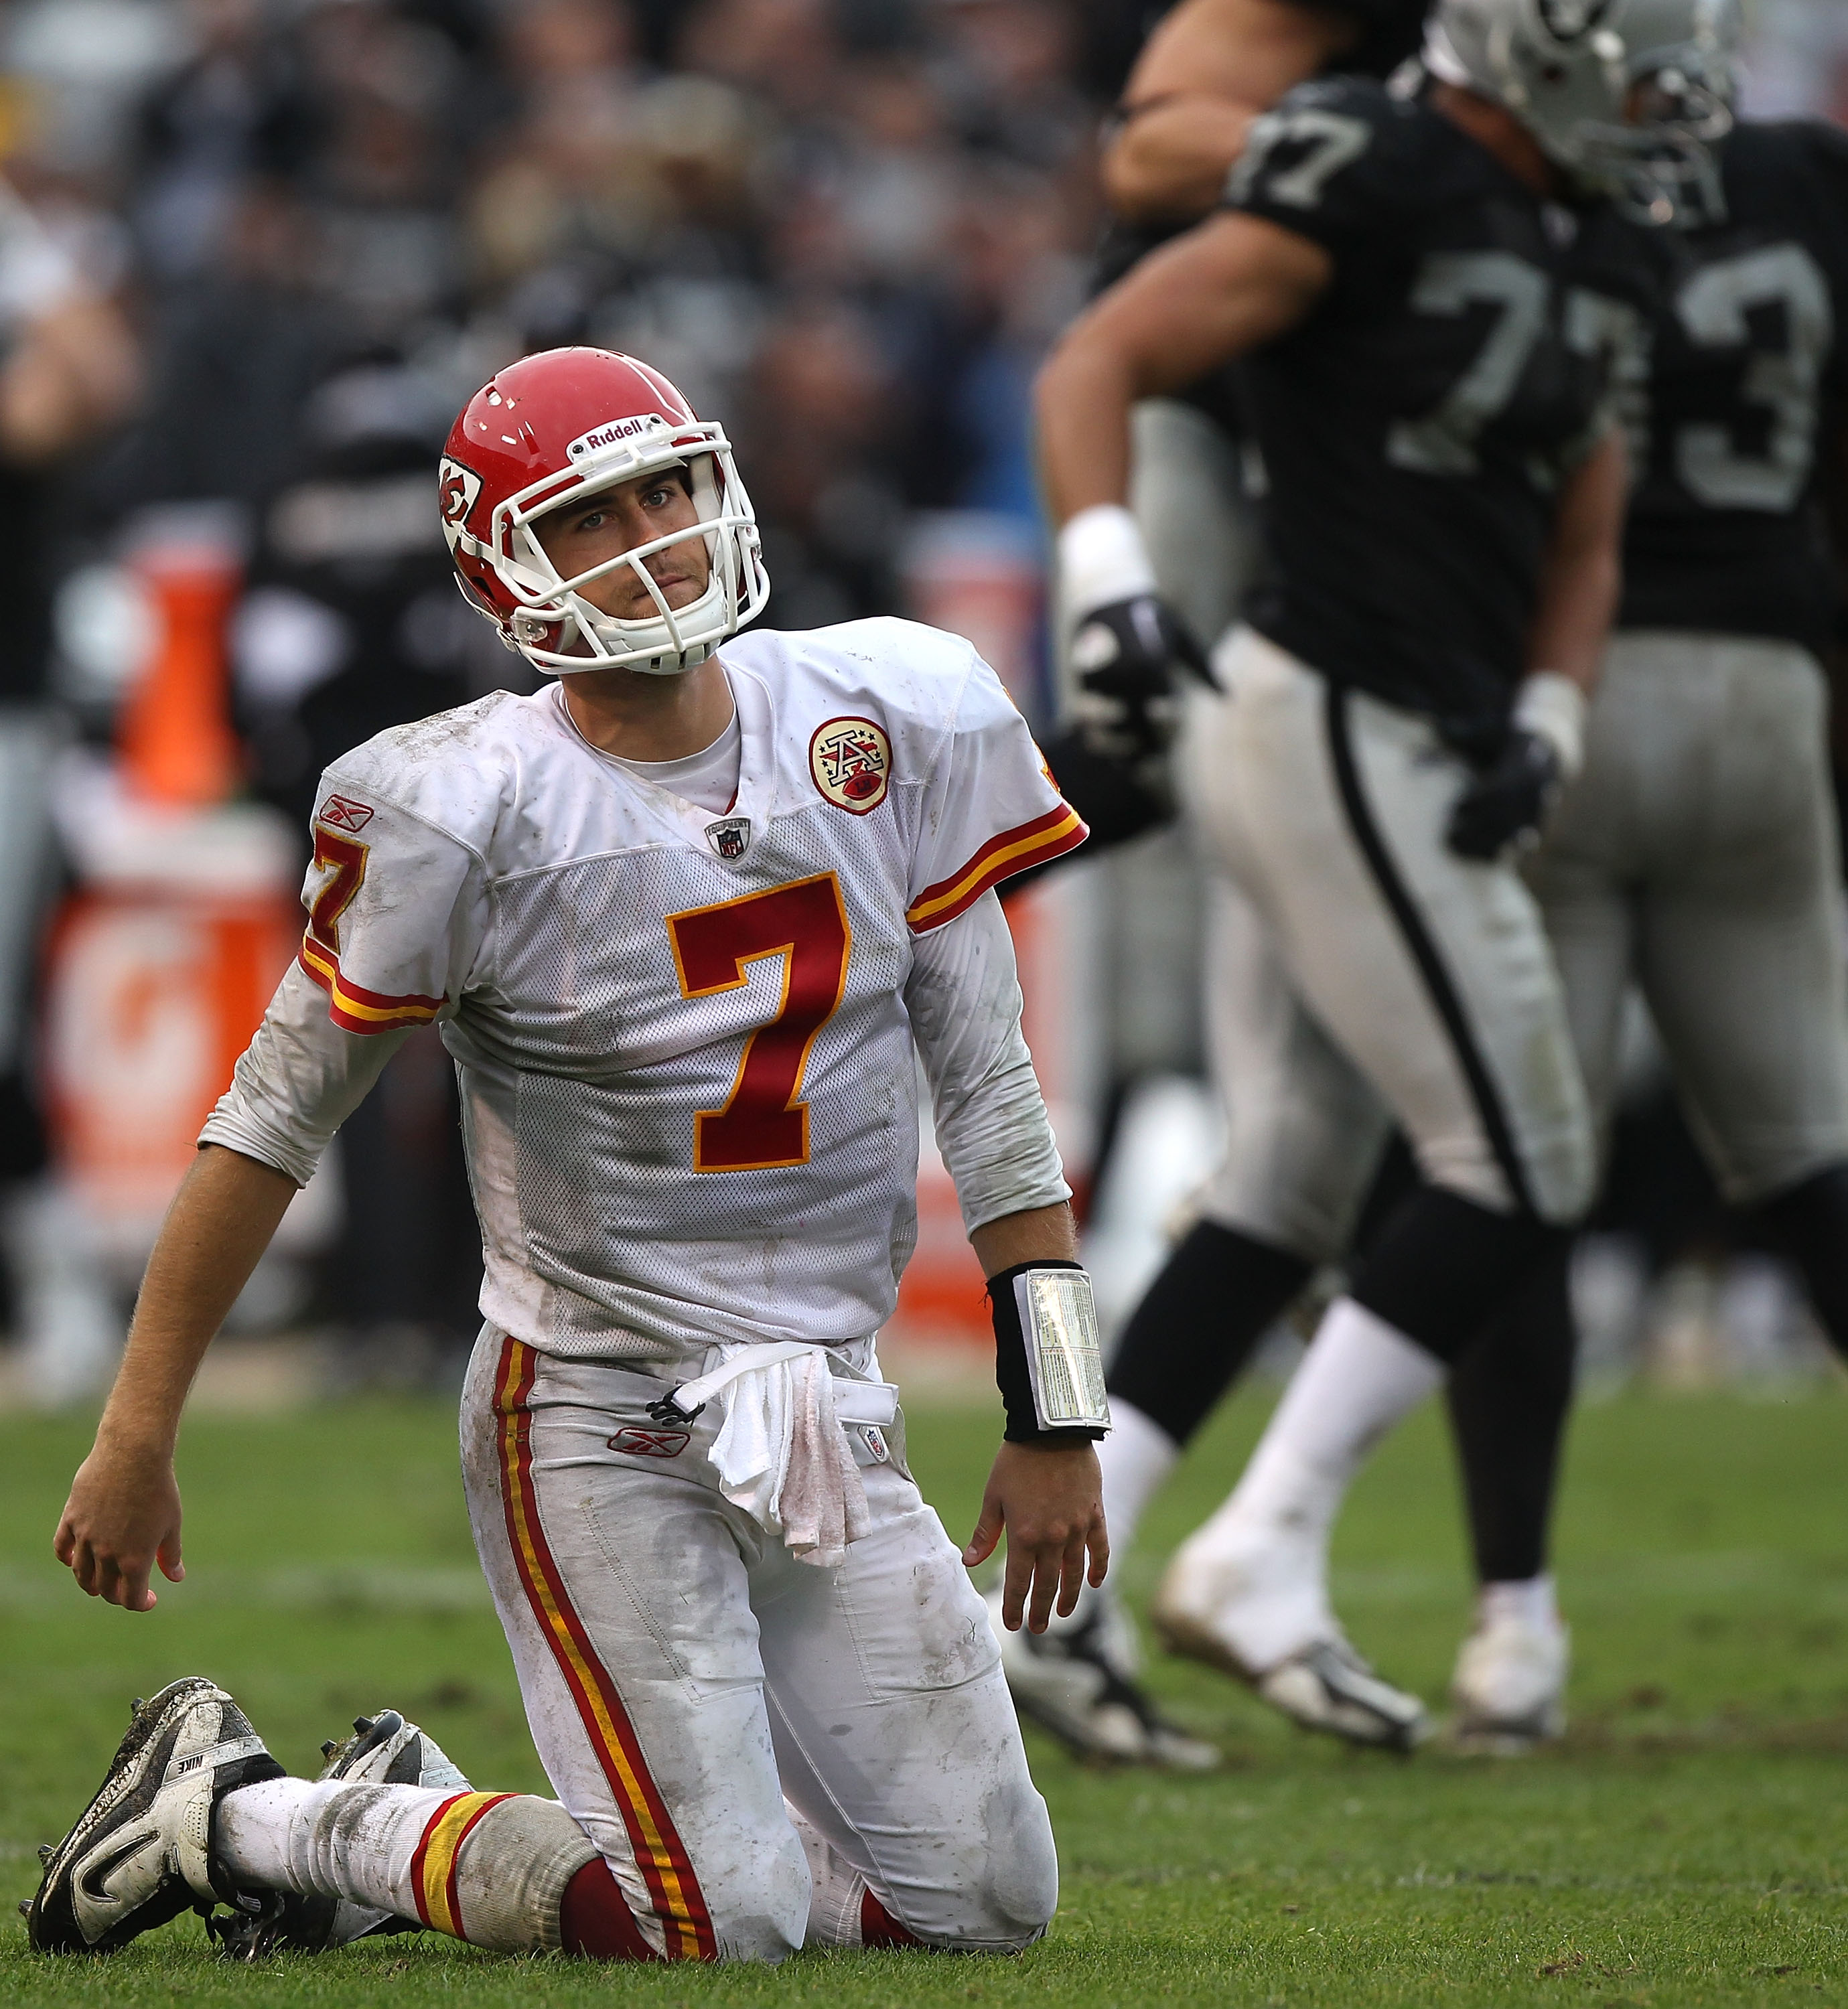 OAKLAND, CA - NOVEMBER 07:  Matt Cassel #7 of the Kansas City Chiefs is sacked against the Oakland Raiders during an NFL game at Oakland-Alameda County Coliseum on November 7, 2010 in Oakland, California.  (Photo by Jed Jacobsohn/Getty Images)